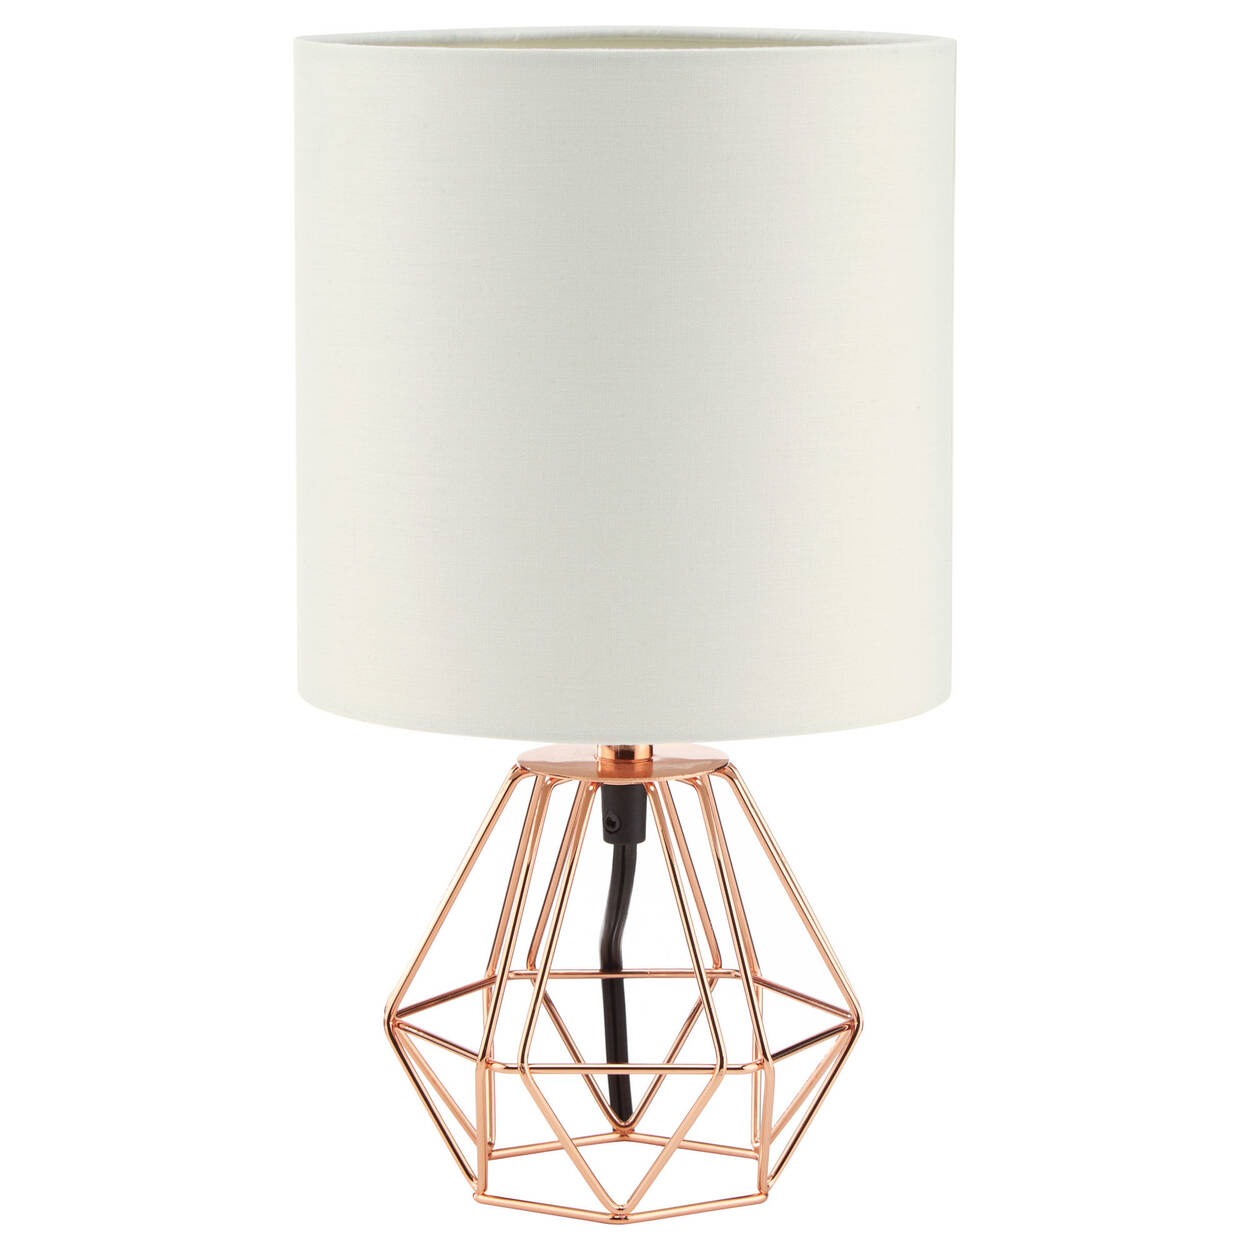 Geometric metal wire table lamp bouclair geometric metal wire table lamp greentooth